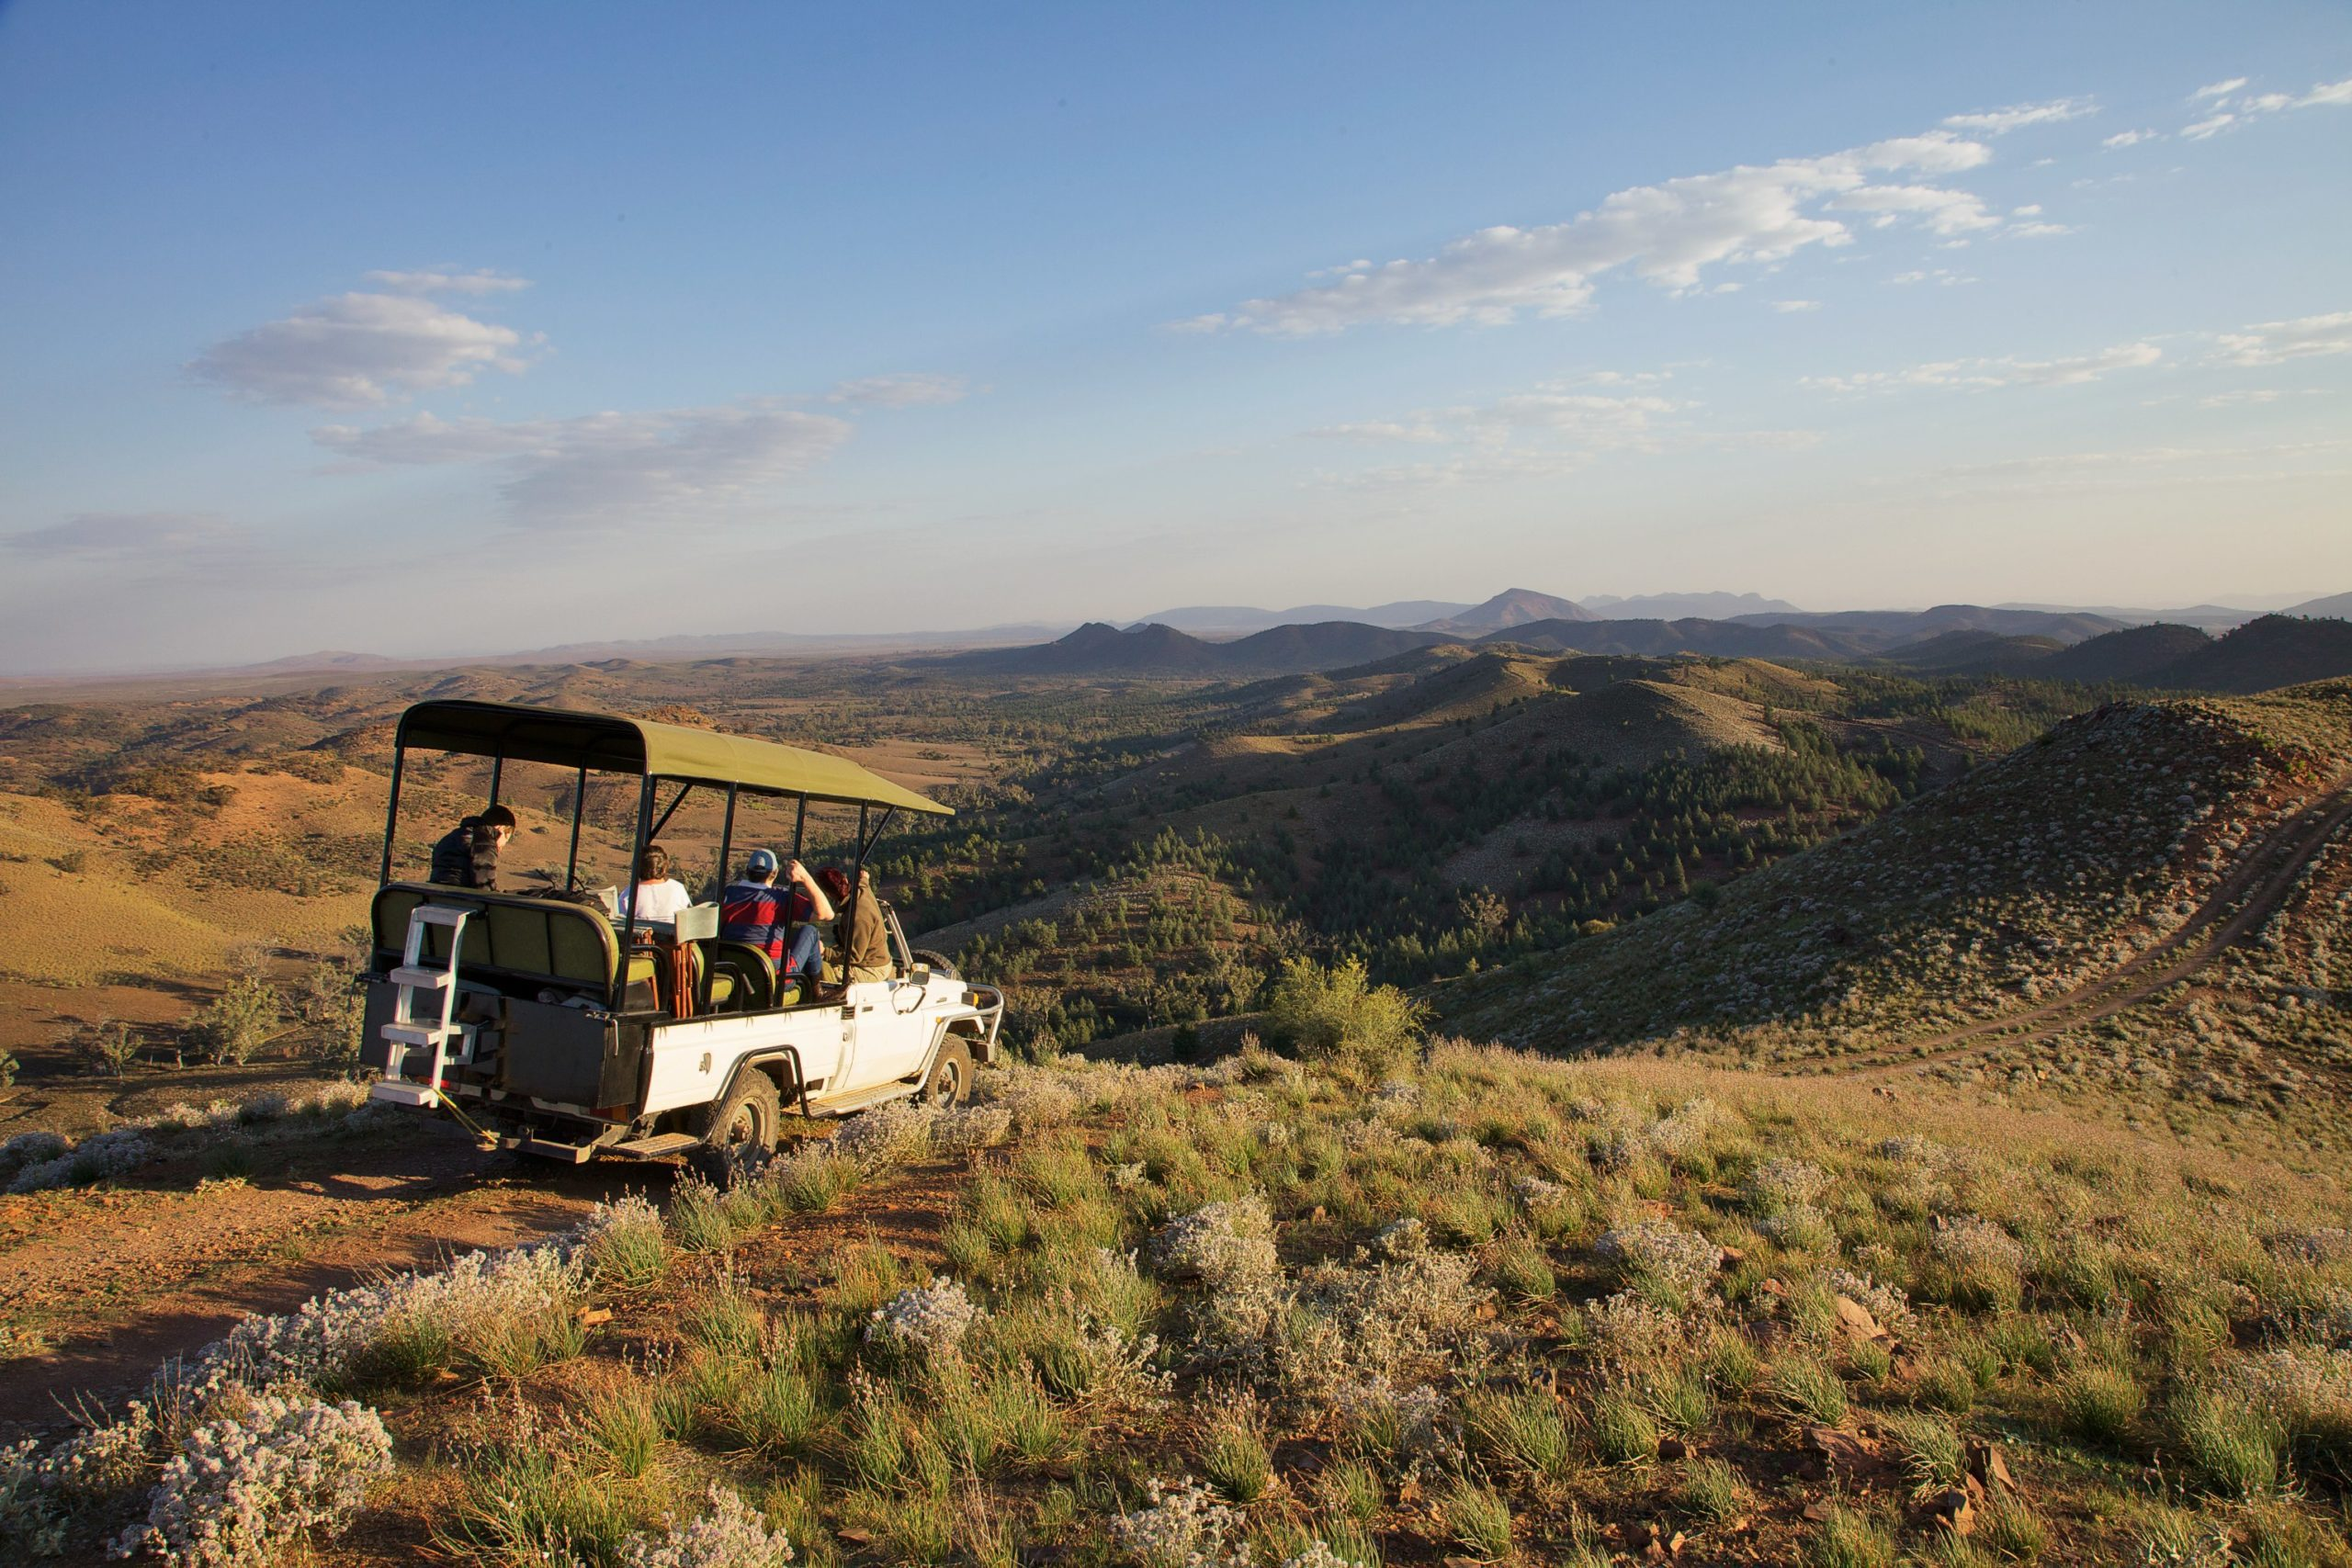 A safari vehicle driving on a dirt road through the hills of the Flinders Ranges at Arkaba